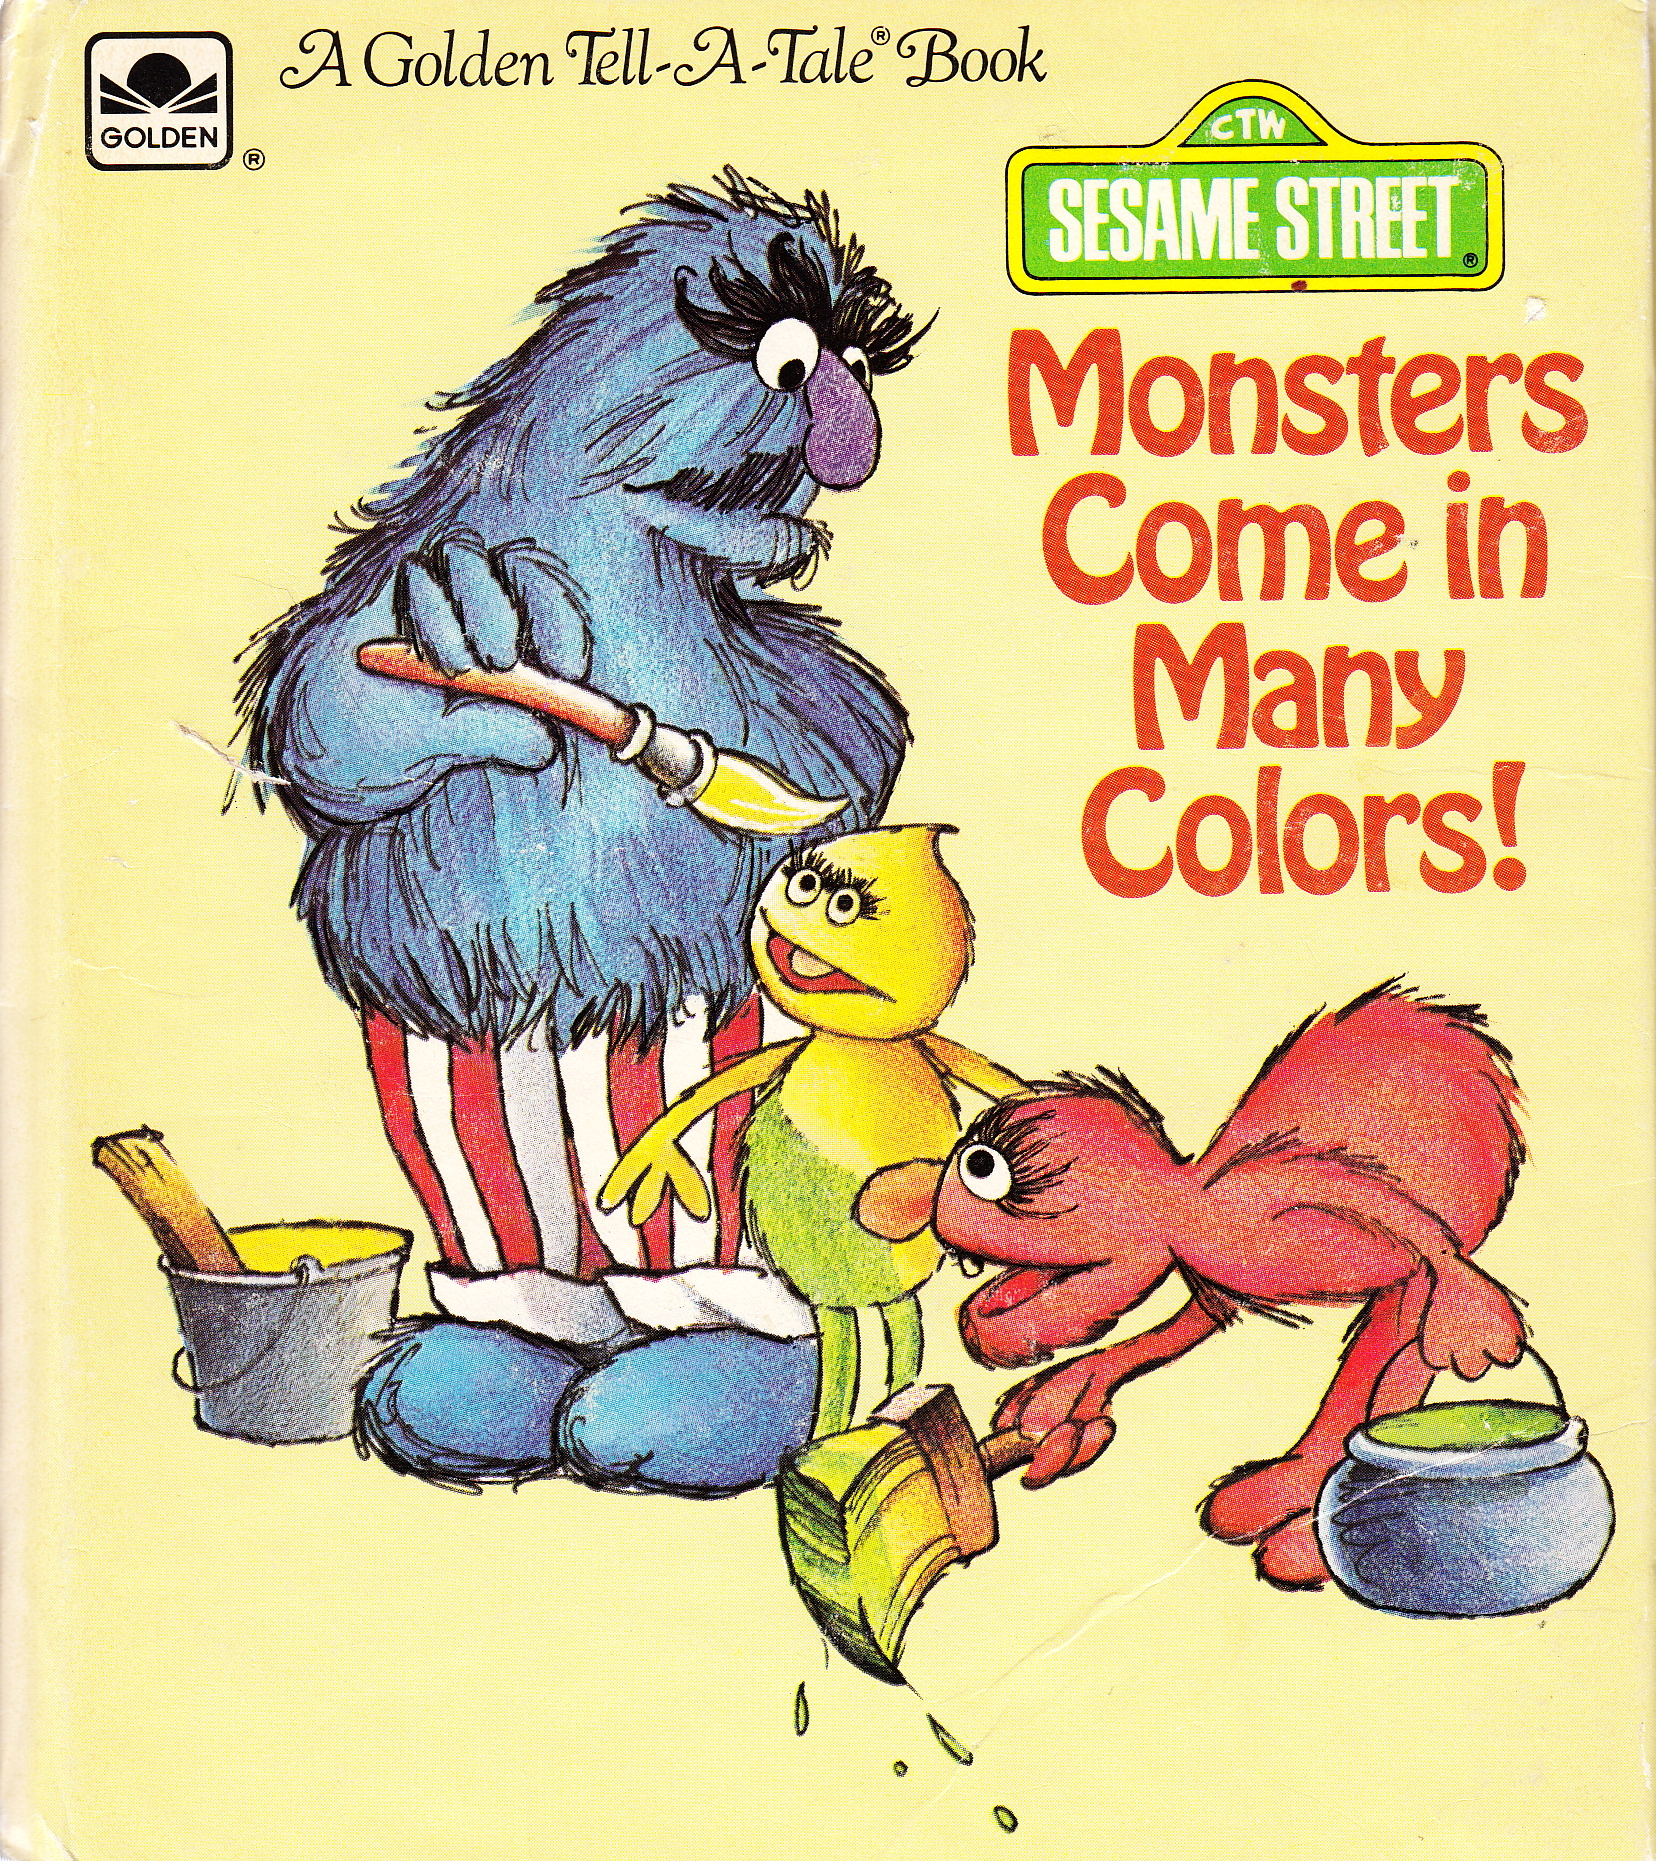 Monsters Come in Many Colors!